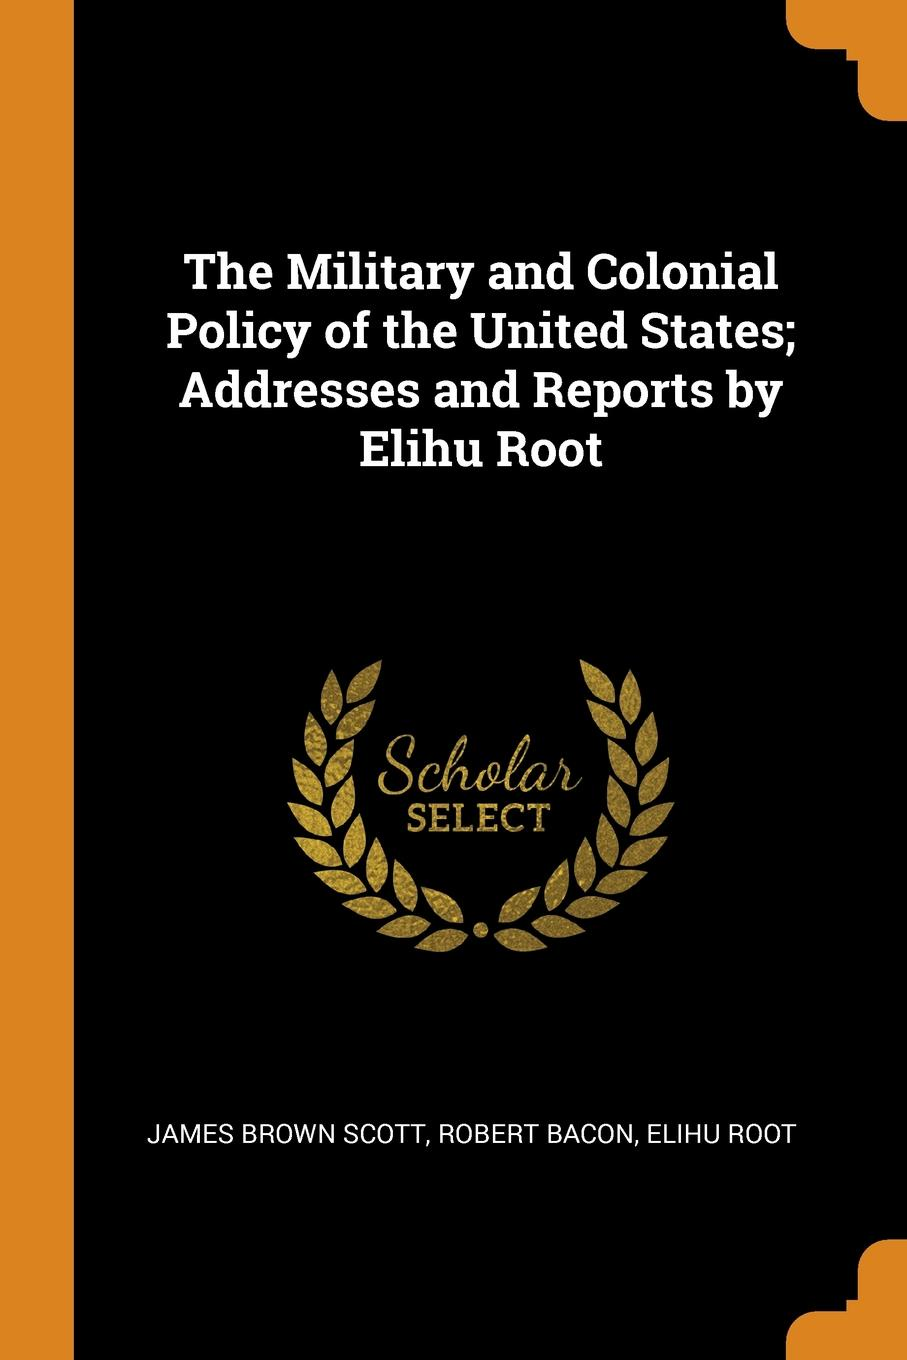 James Brown Scott, Robert Bacon, Elihu Root The Military and Colonial Policy of the United States; Addresses and Reports by Elihu Root